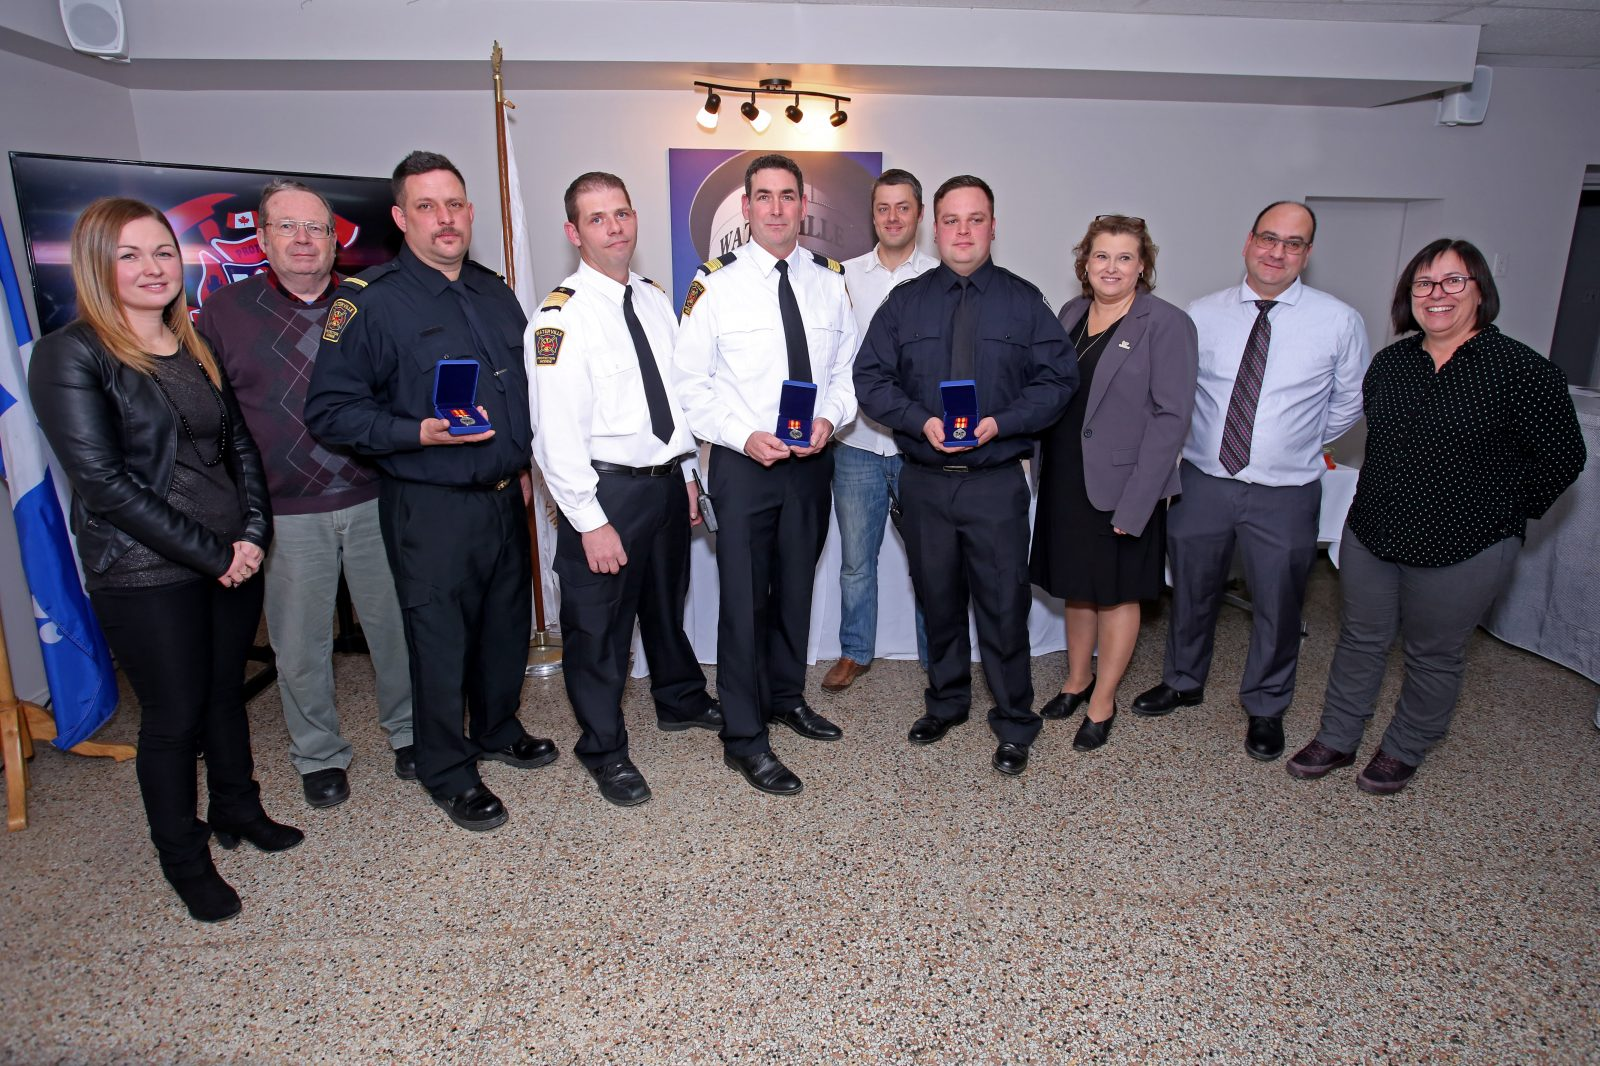 Waterville honore ses pompiers volontaires